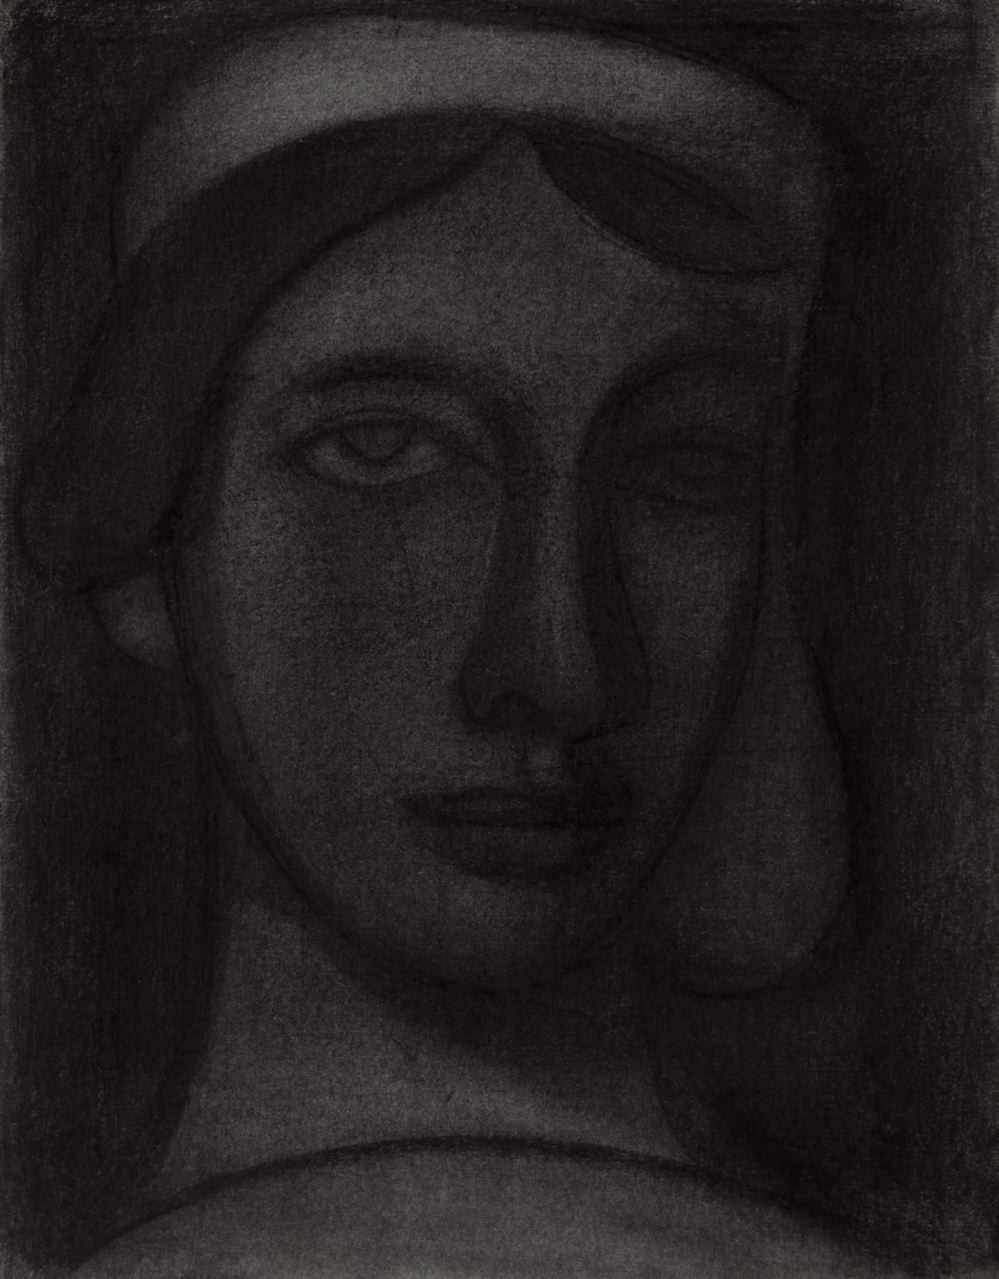 Mark Shields RUA, In the Looking Glass, charcoal, 35 x 27 cm